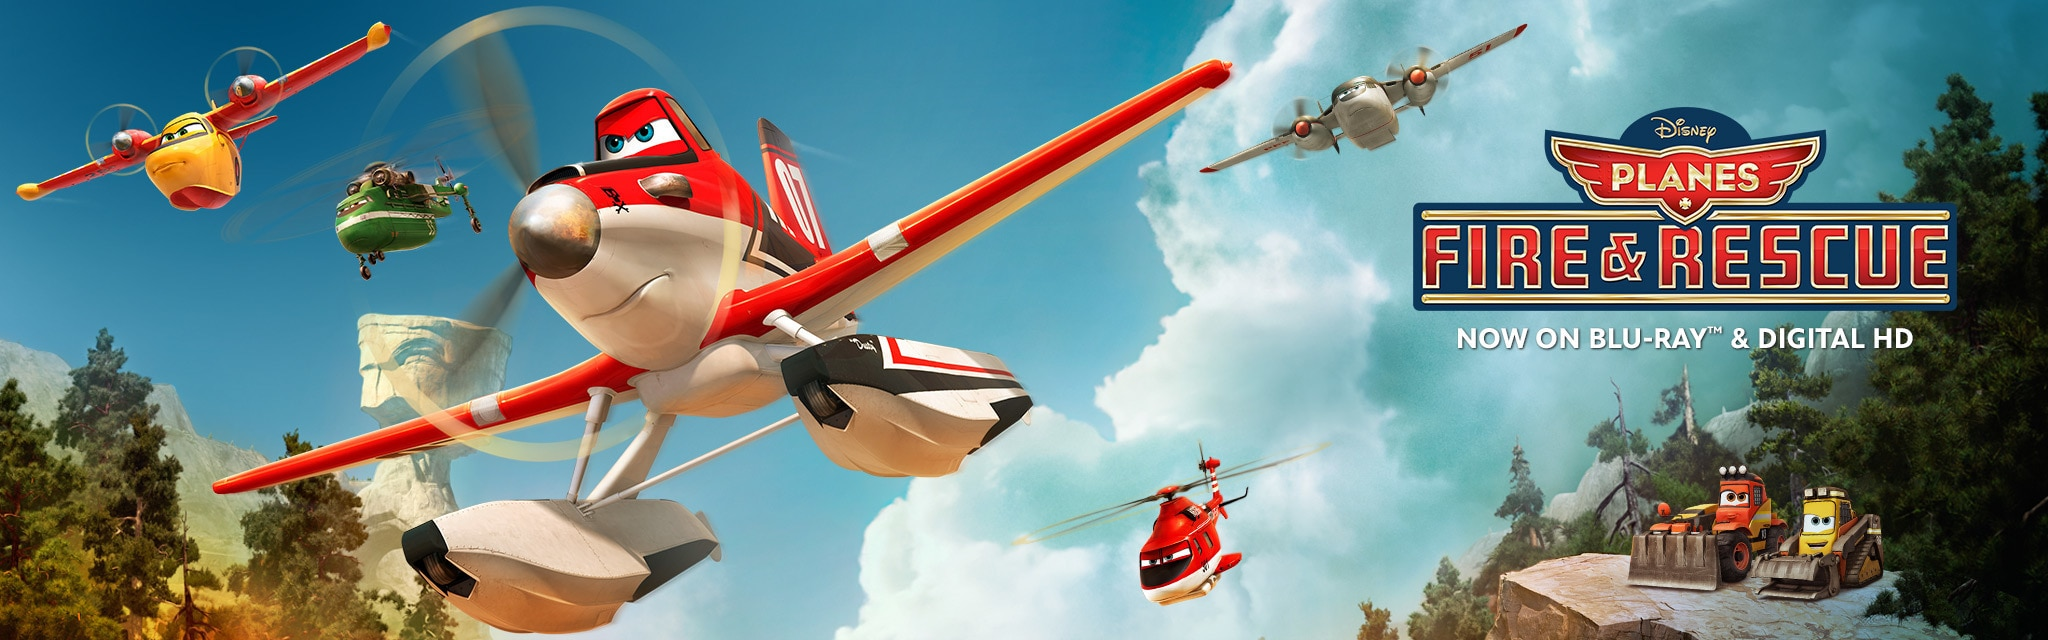 Planes: Fire & Rescue HP Hero